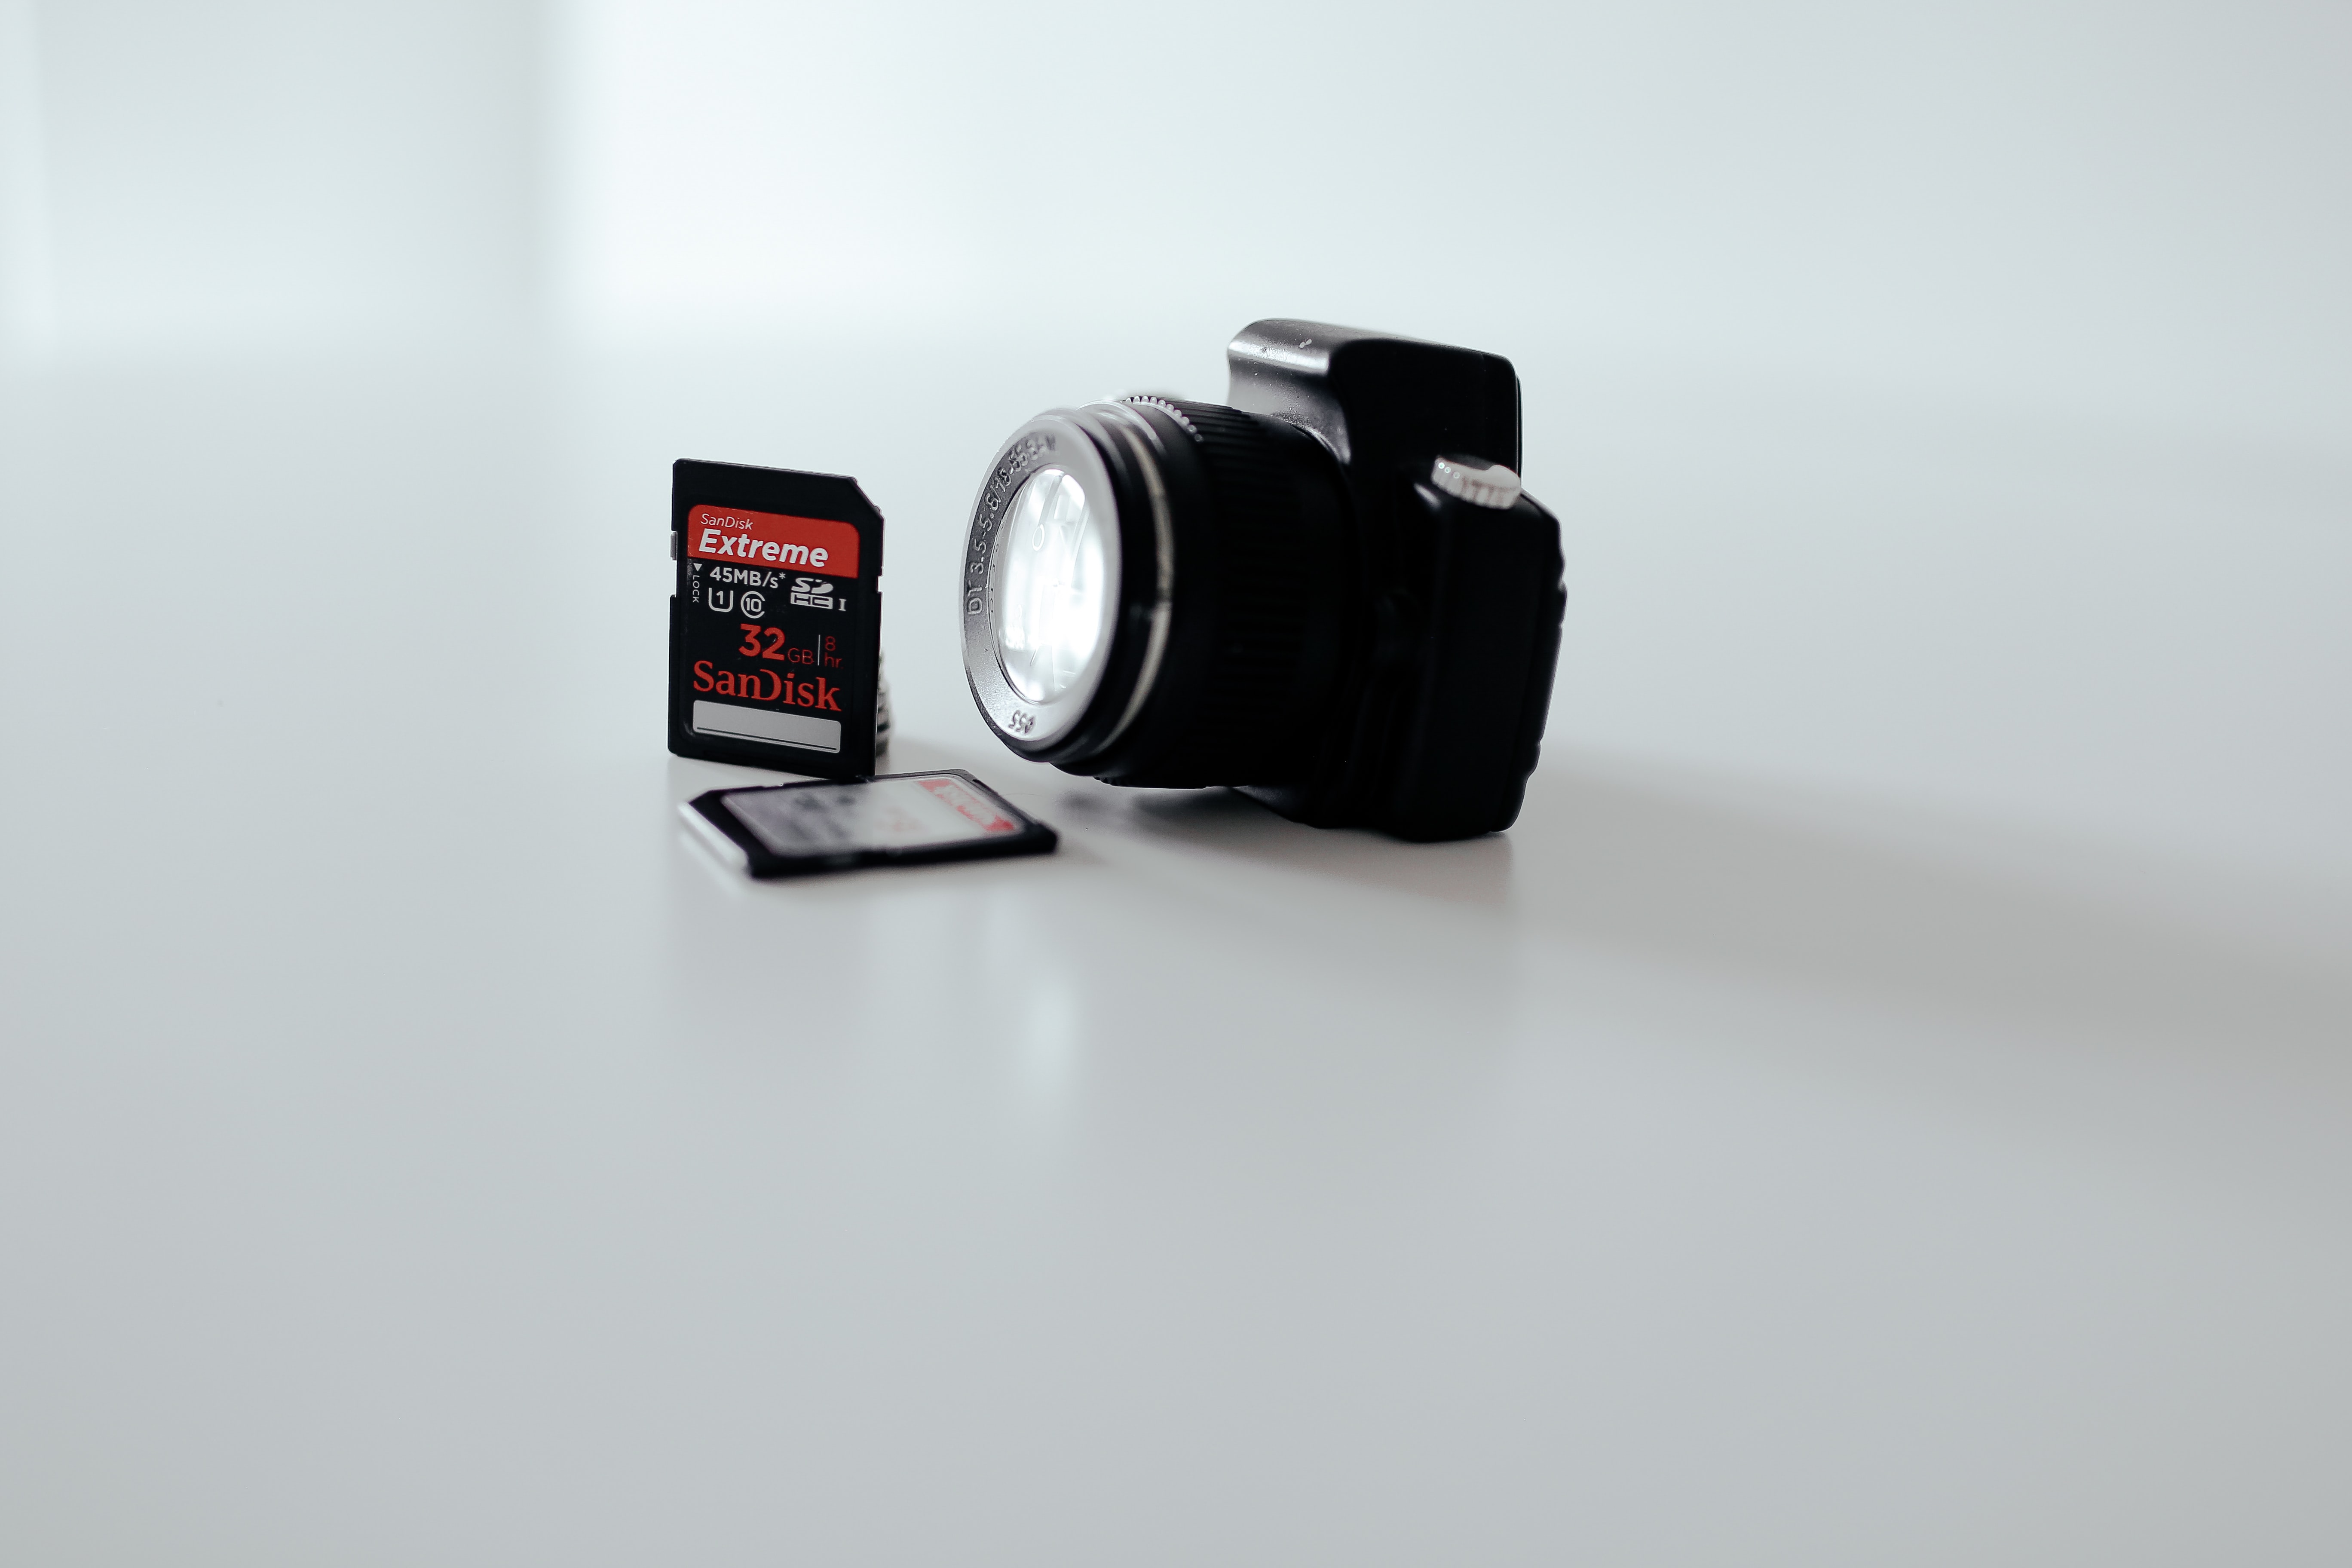 A minimalist photo of a camera lens and two SD memory cards